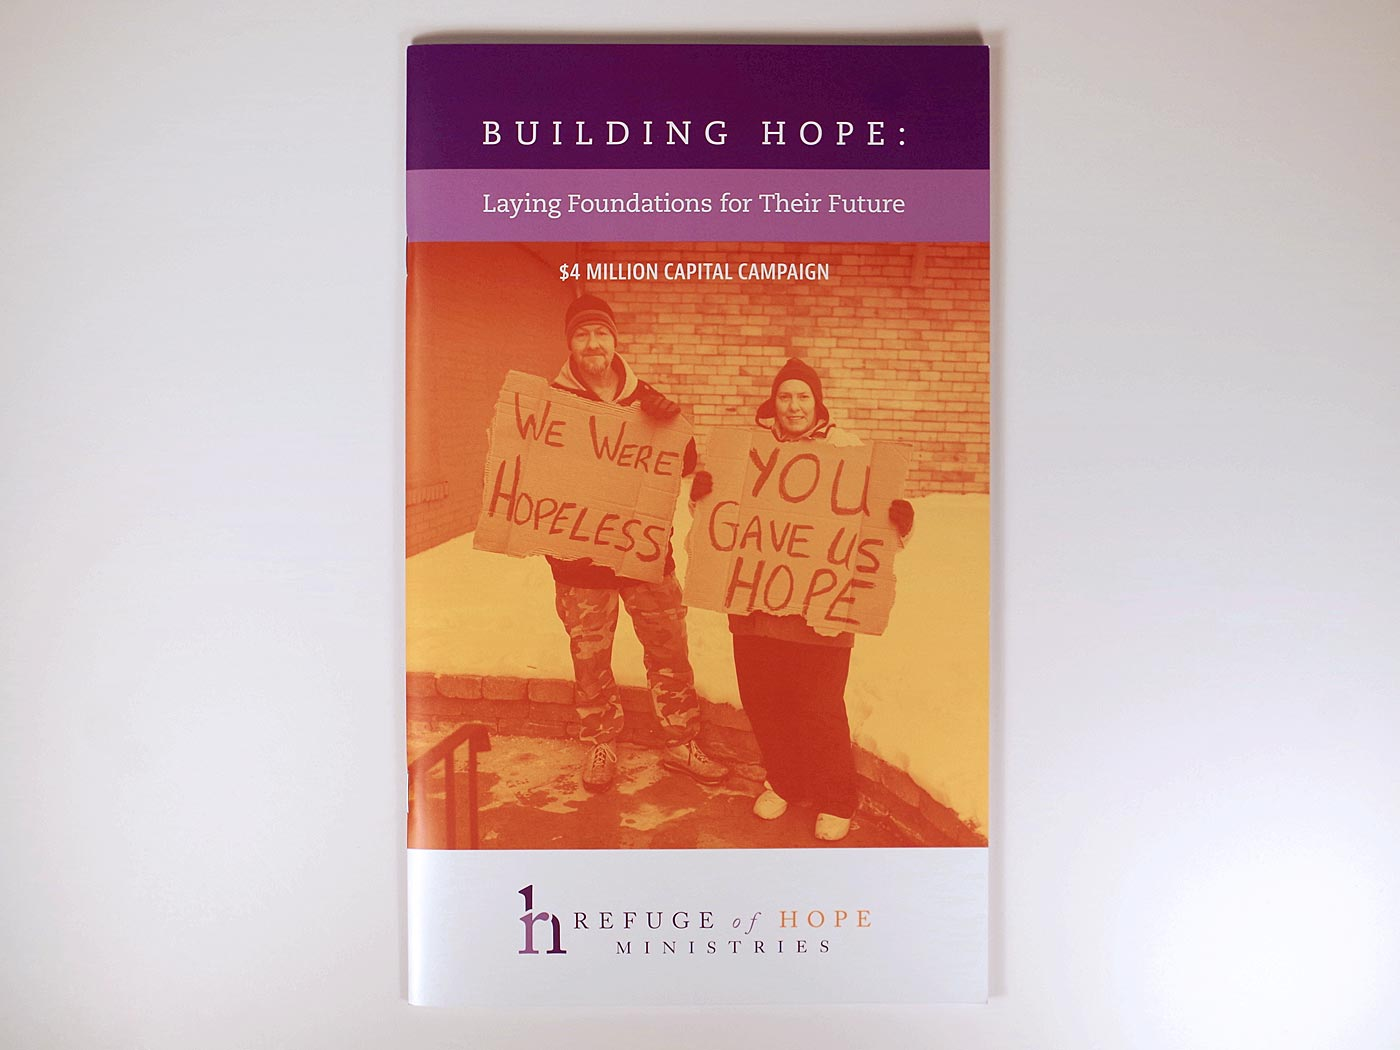 Refuge of Hope Capital Campaign booklet cover